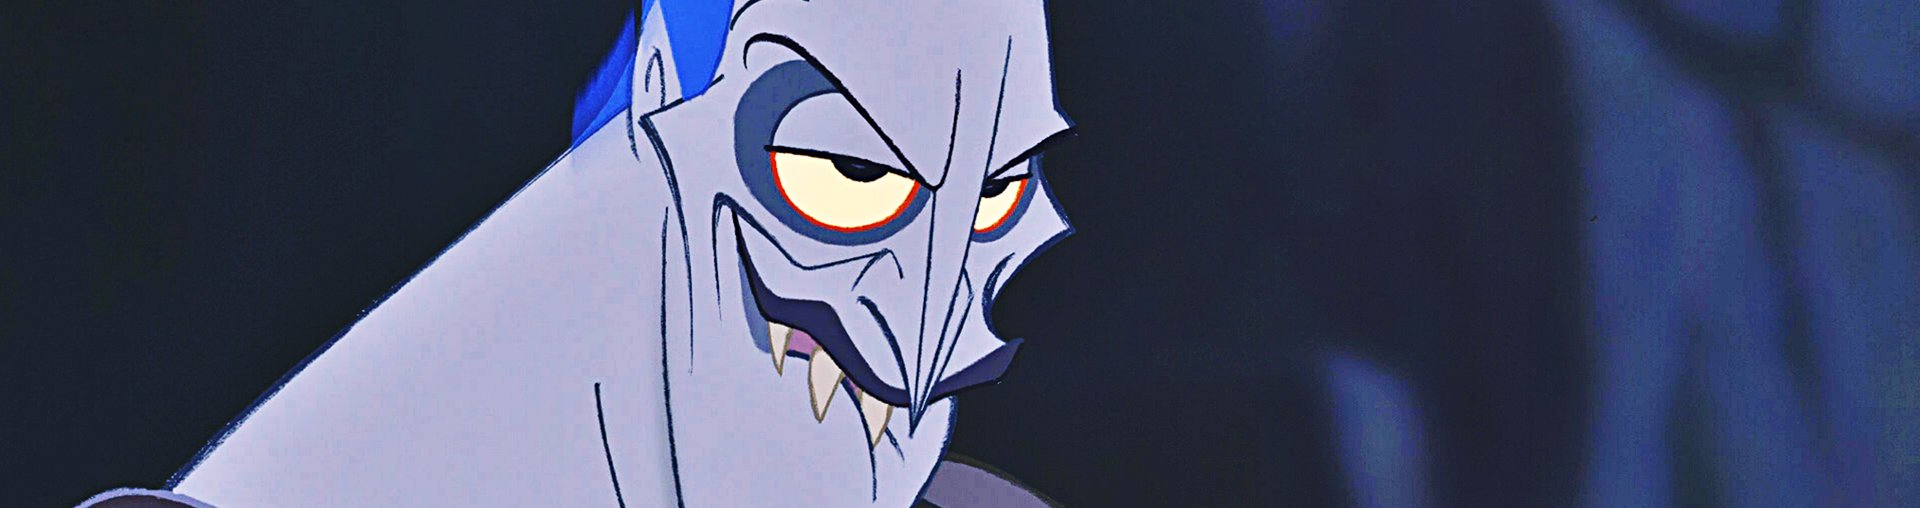 hades_disney_hampa_studio_blog